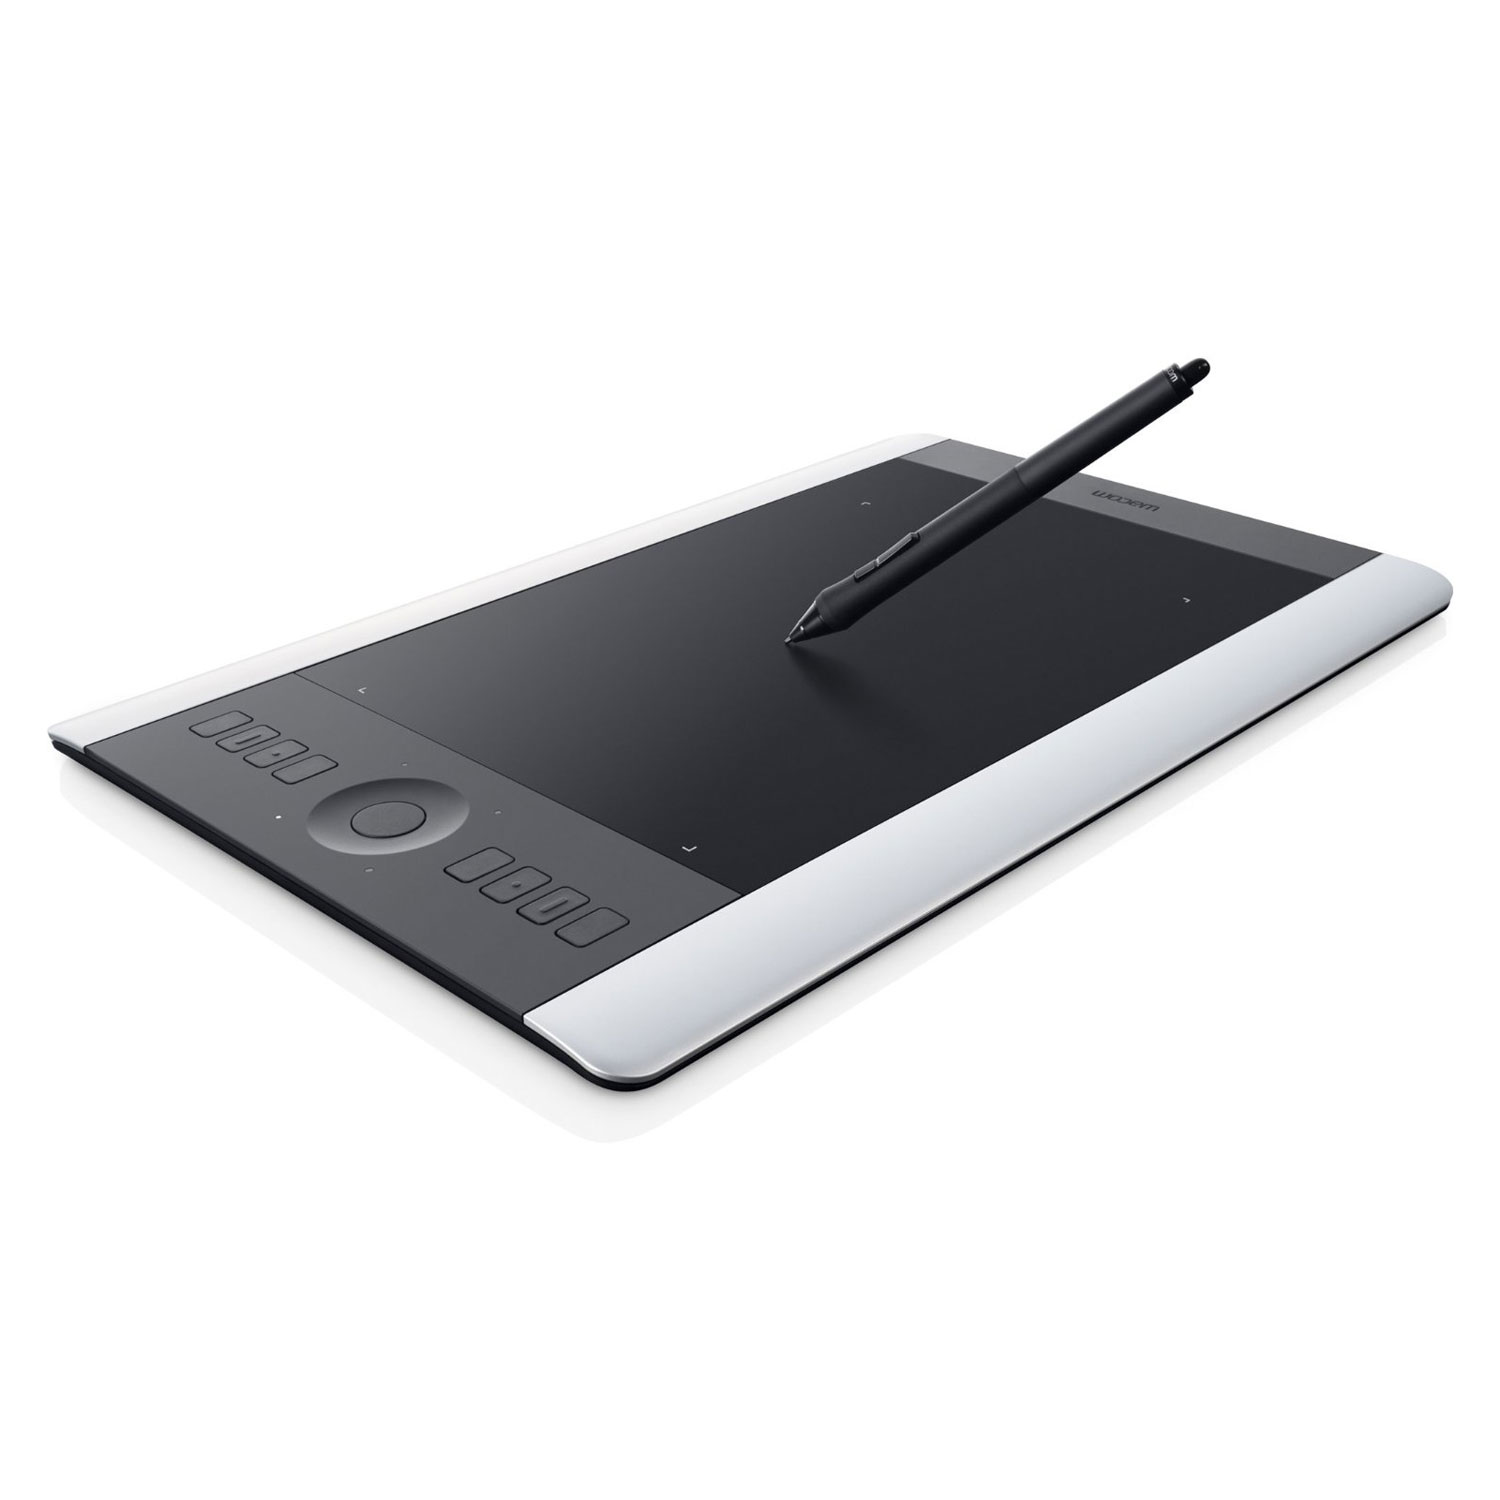 Intuos Pro Professional Pen  Touch Tablet Special Edition Silver  Black  Medium